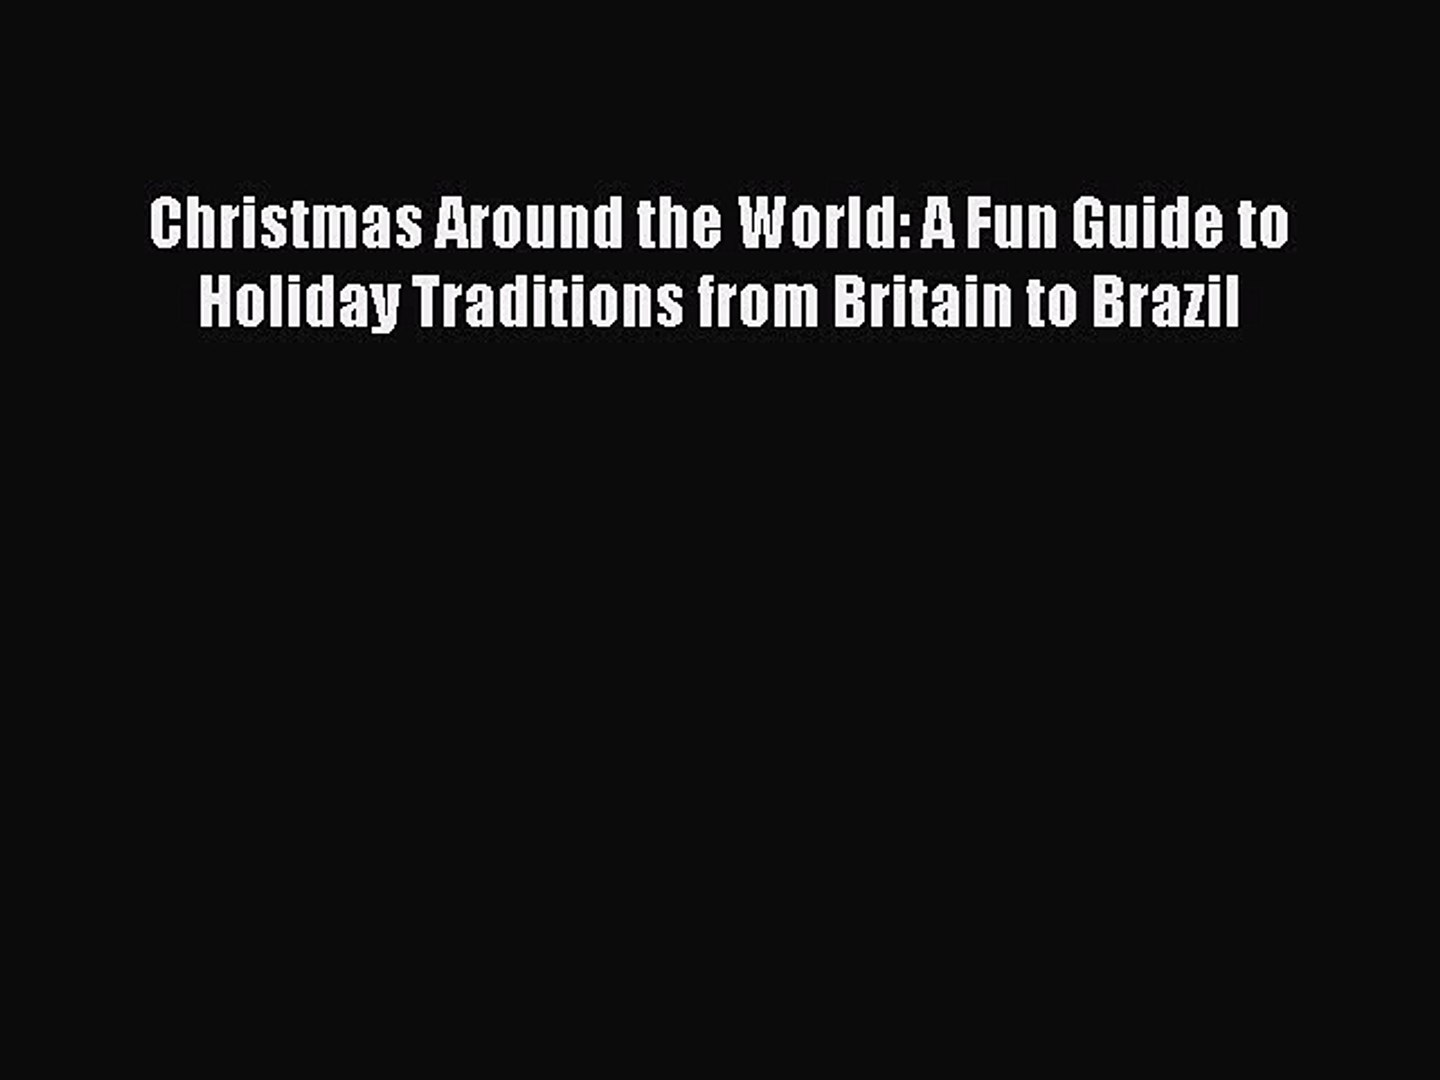 Christmas Around the World: A Fun Guide to Holiday Traditions from Britain to Brazil